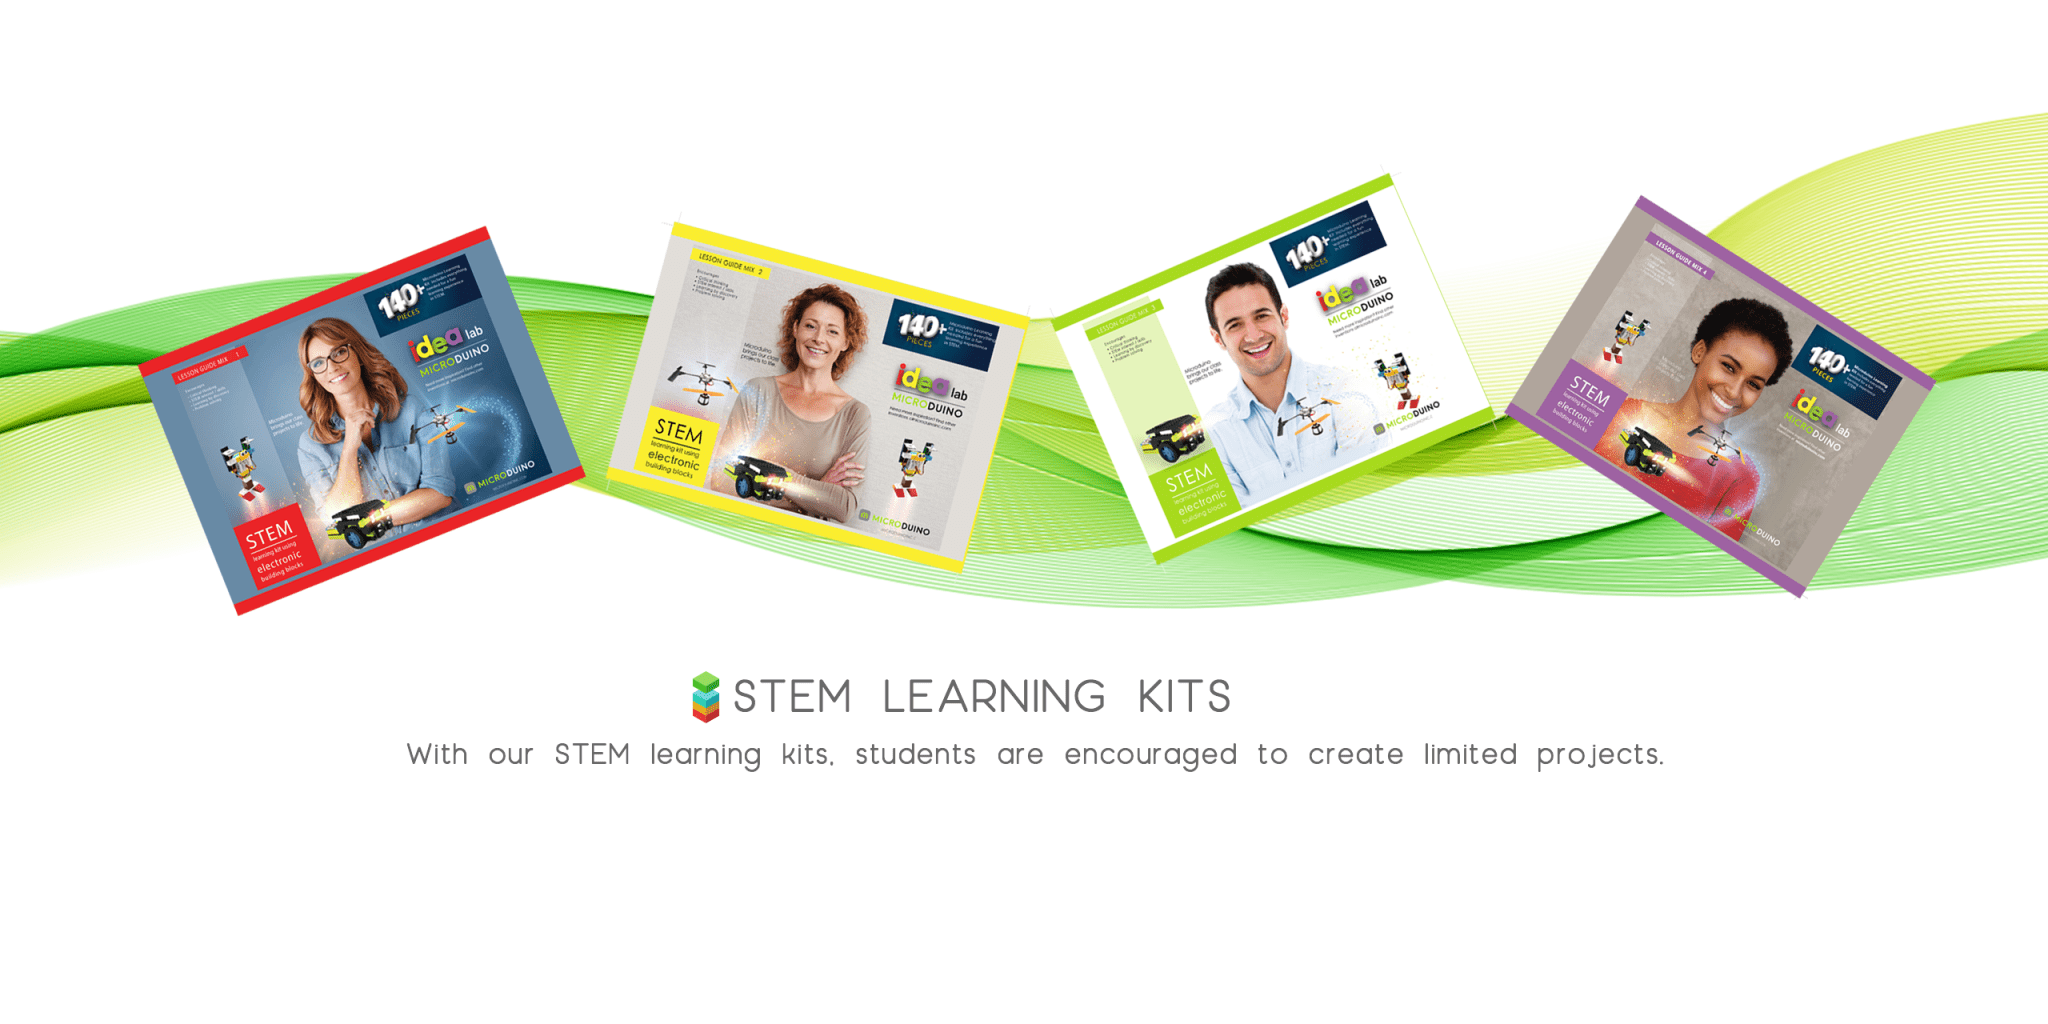 STEM learning kits for use in classrooms.